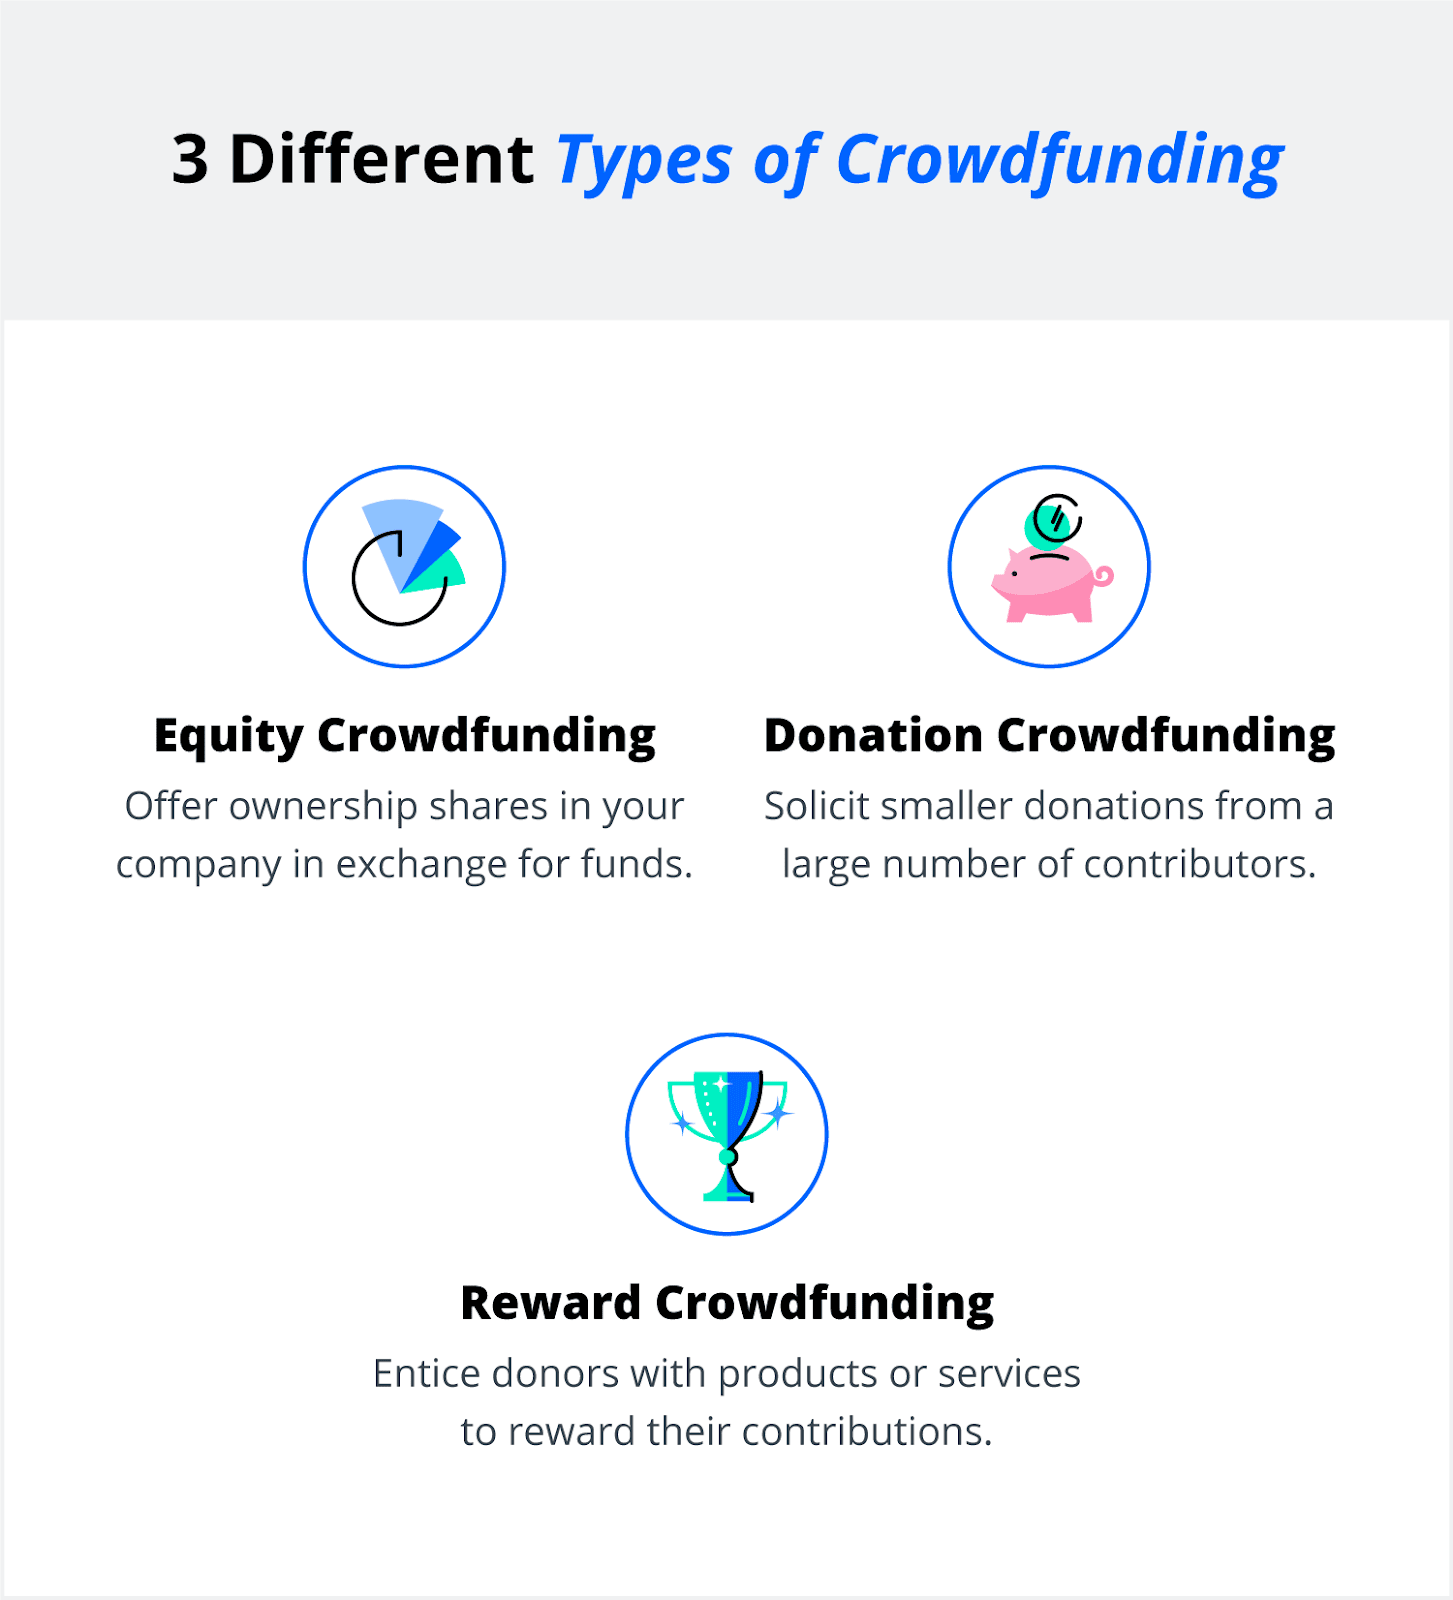 3 different types of crowdfunding